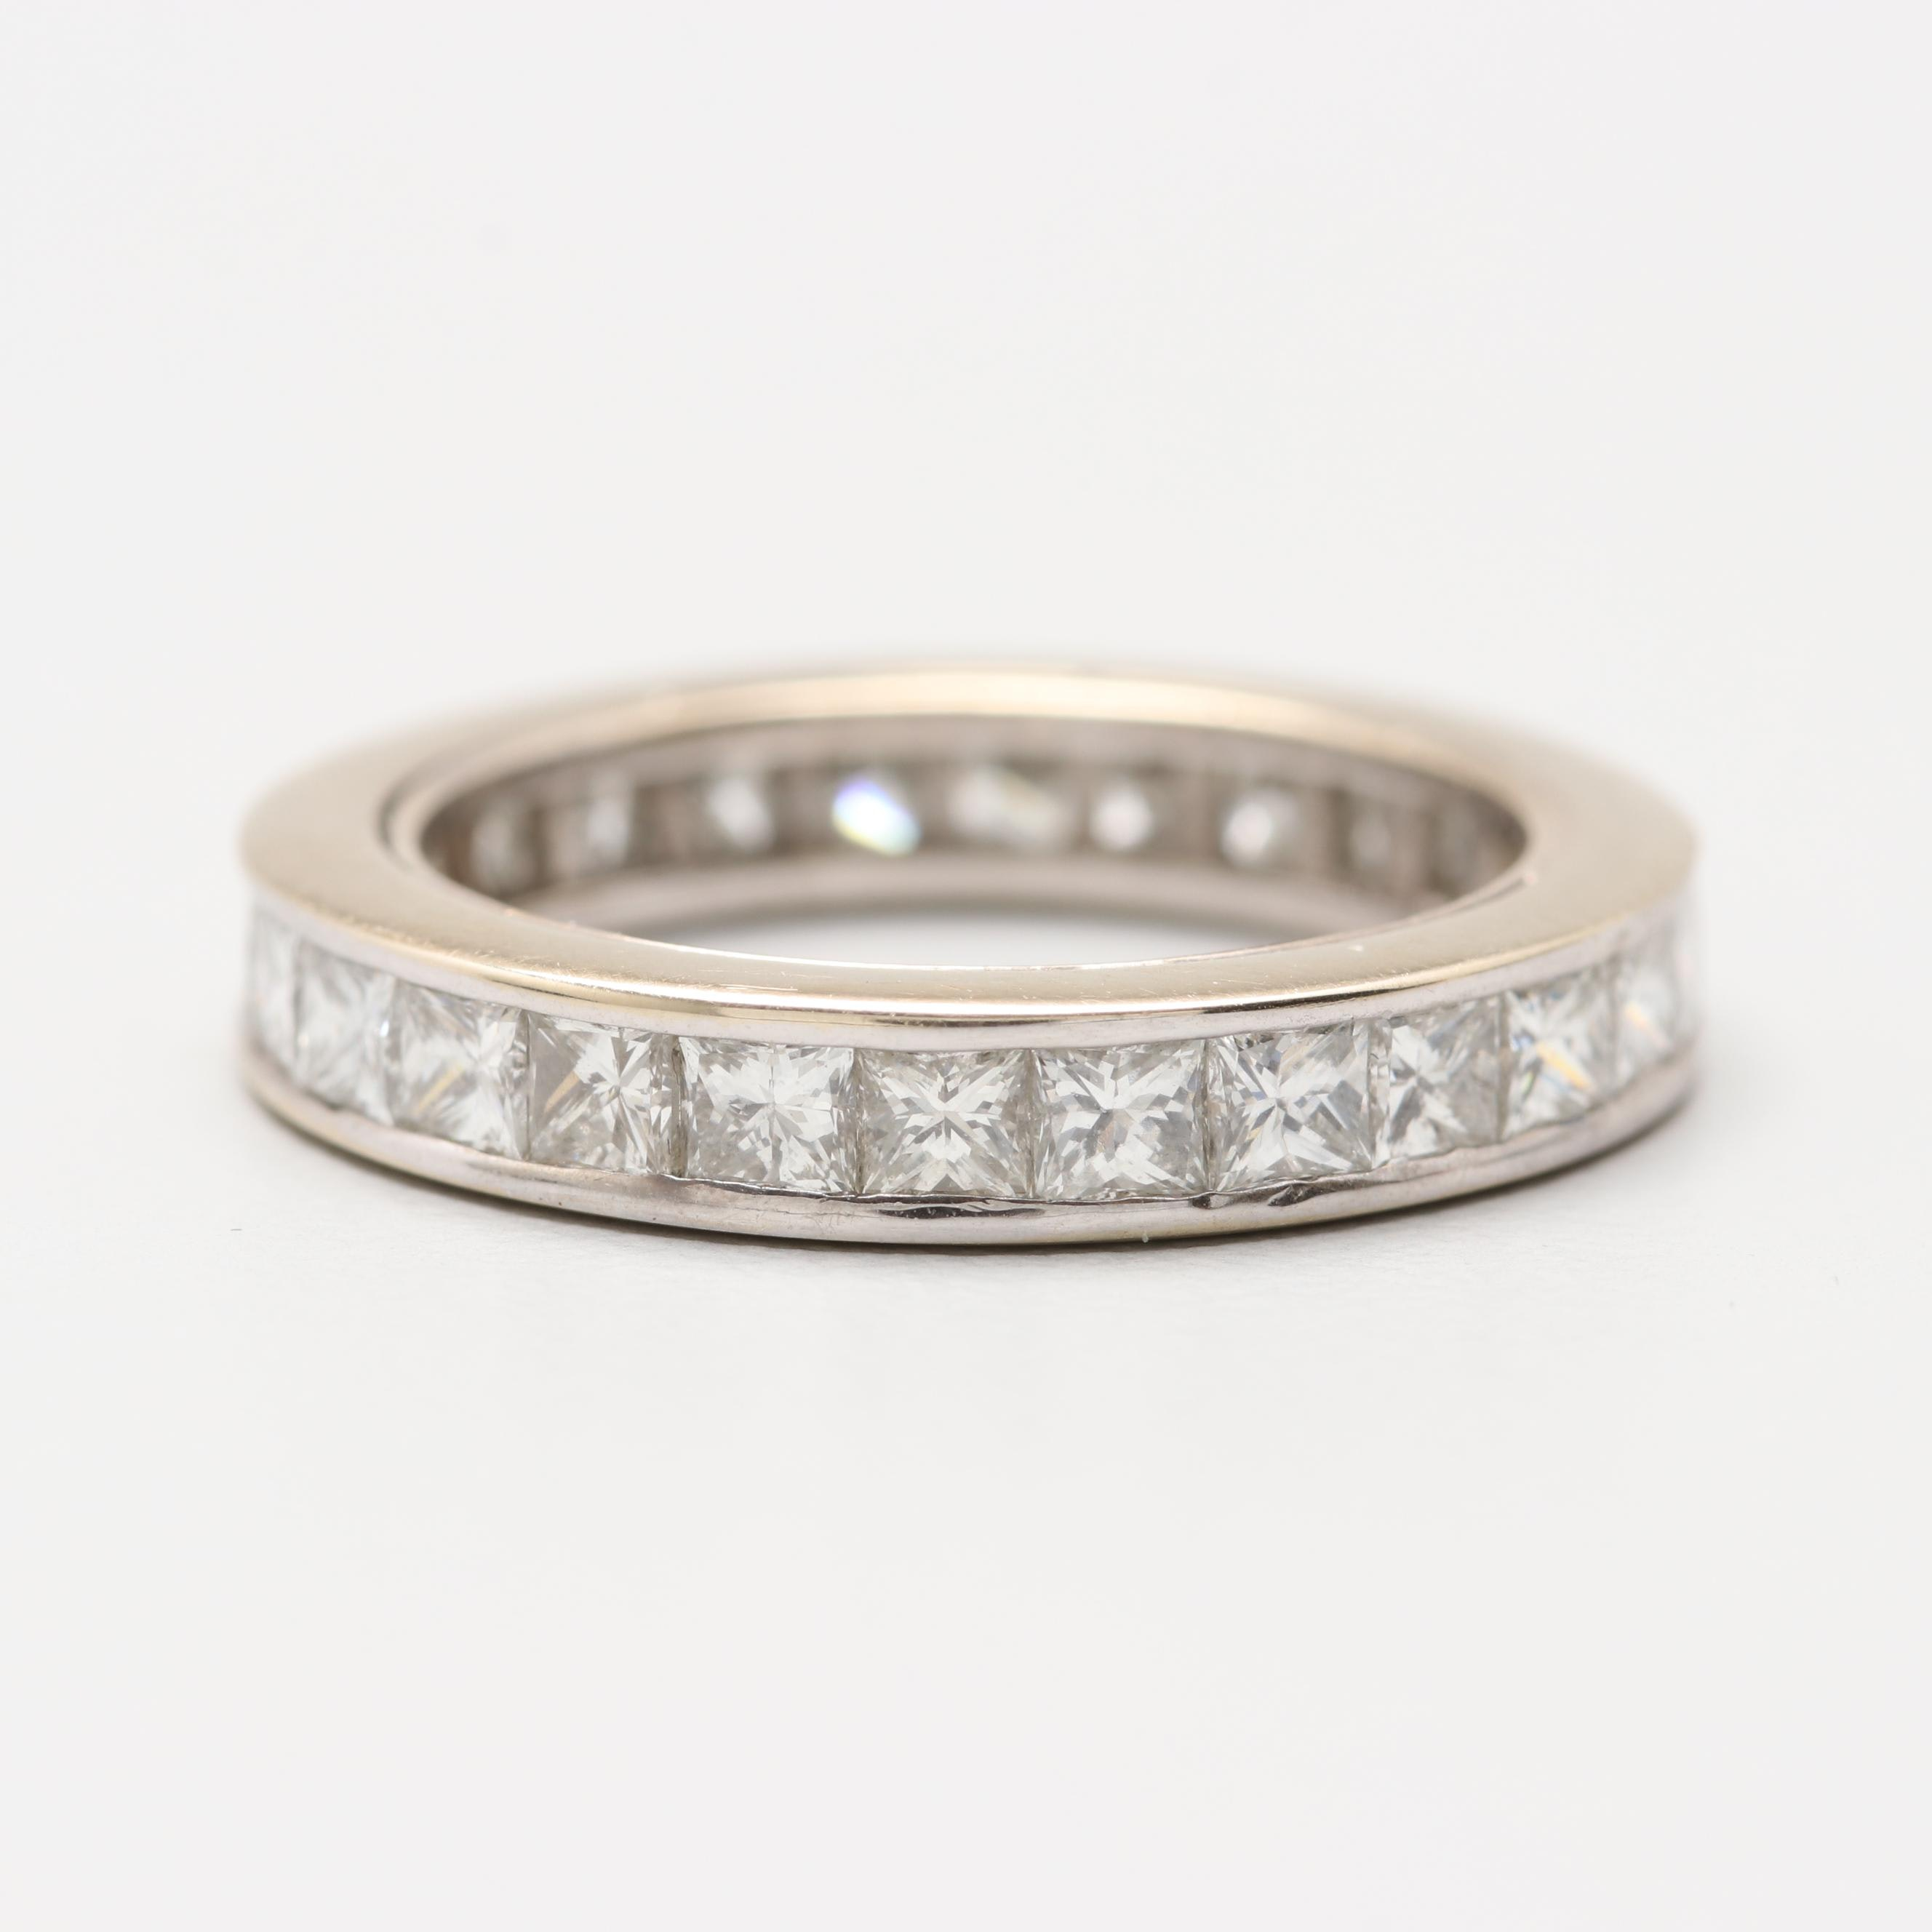 18K White Gold 2.21 CTW Diamond Eternity Band